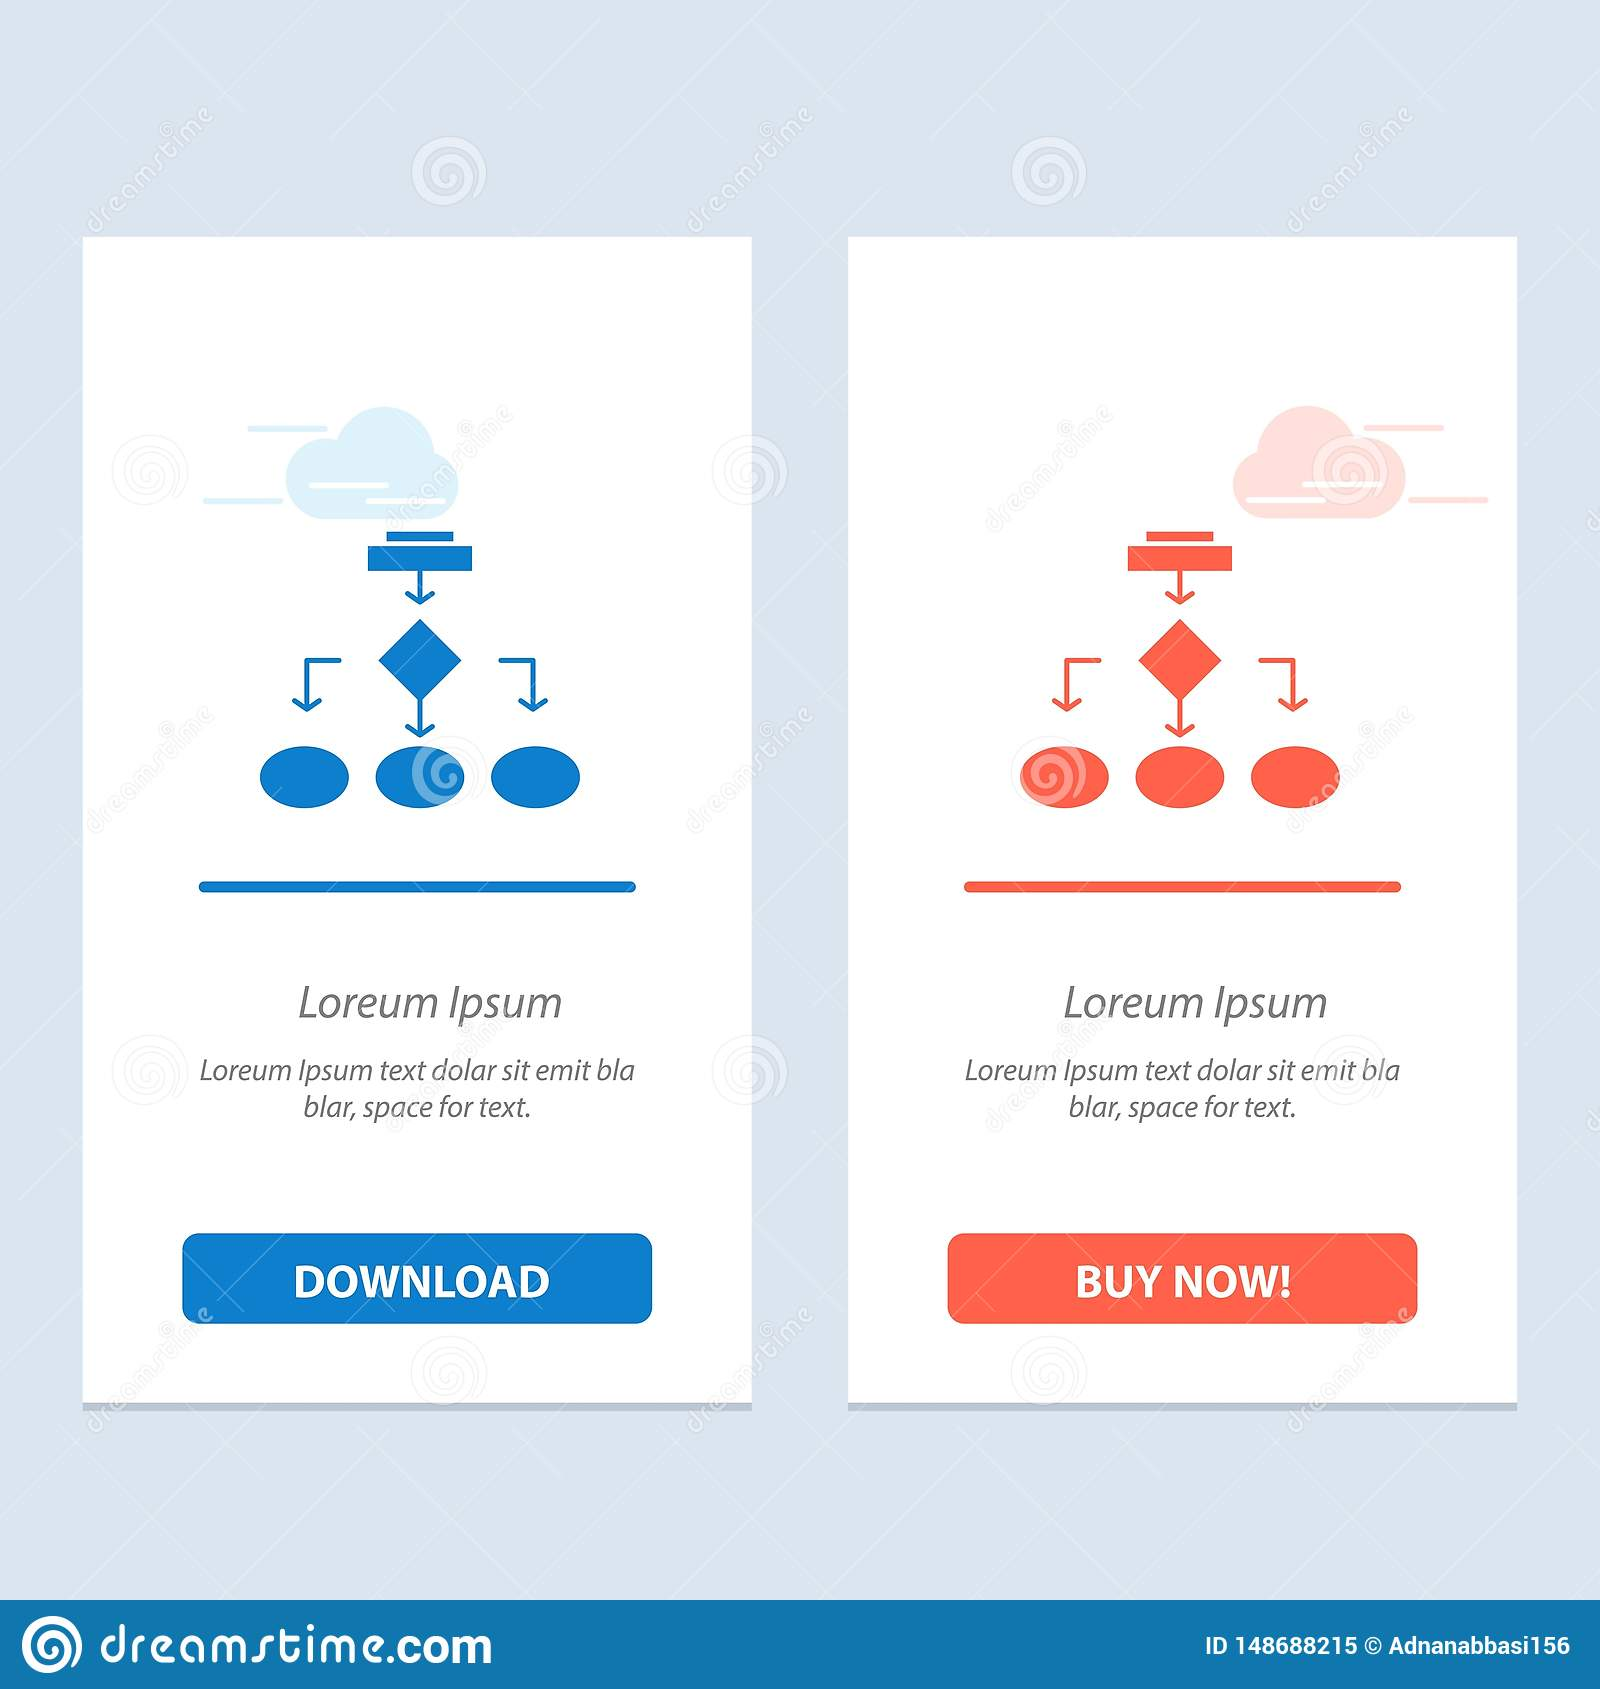 Flowchart, Algorithm, Business, Data Architecture, Scheme, Structure, Workflow Blue and Red Download and Buy Now web Widget Card